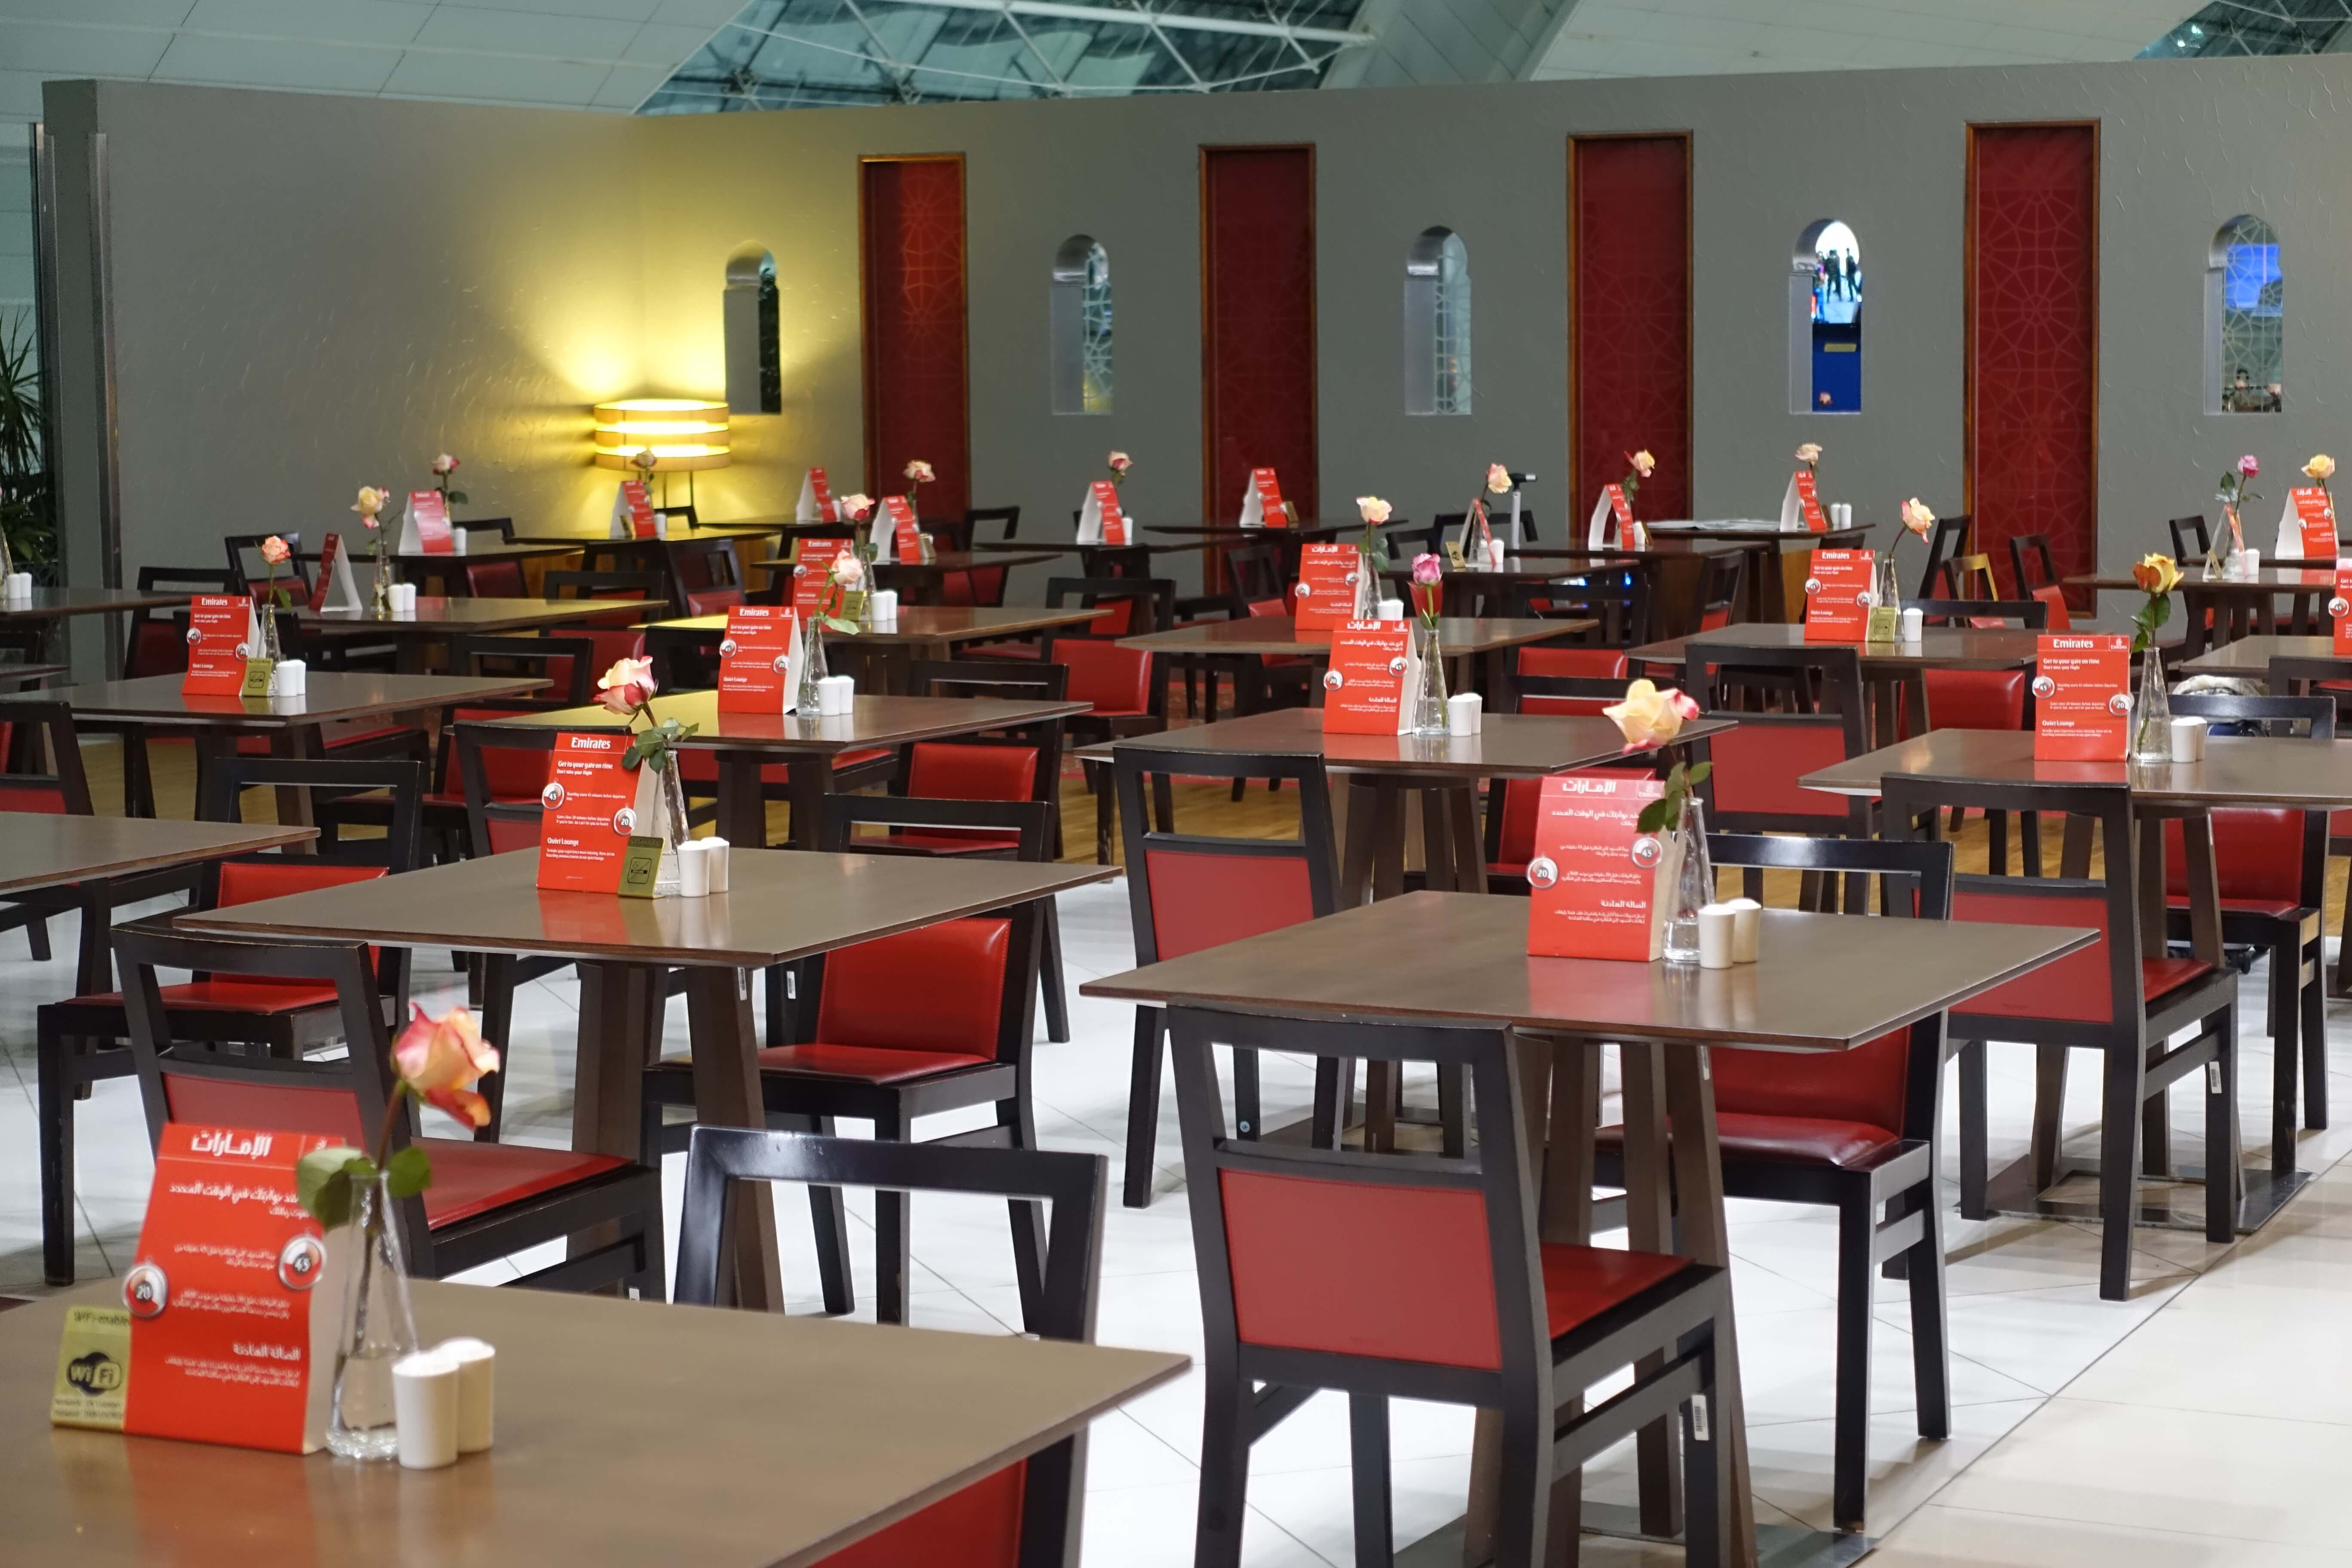 cafeteria tables and chairs, Emirates Business Class lounge